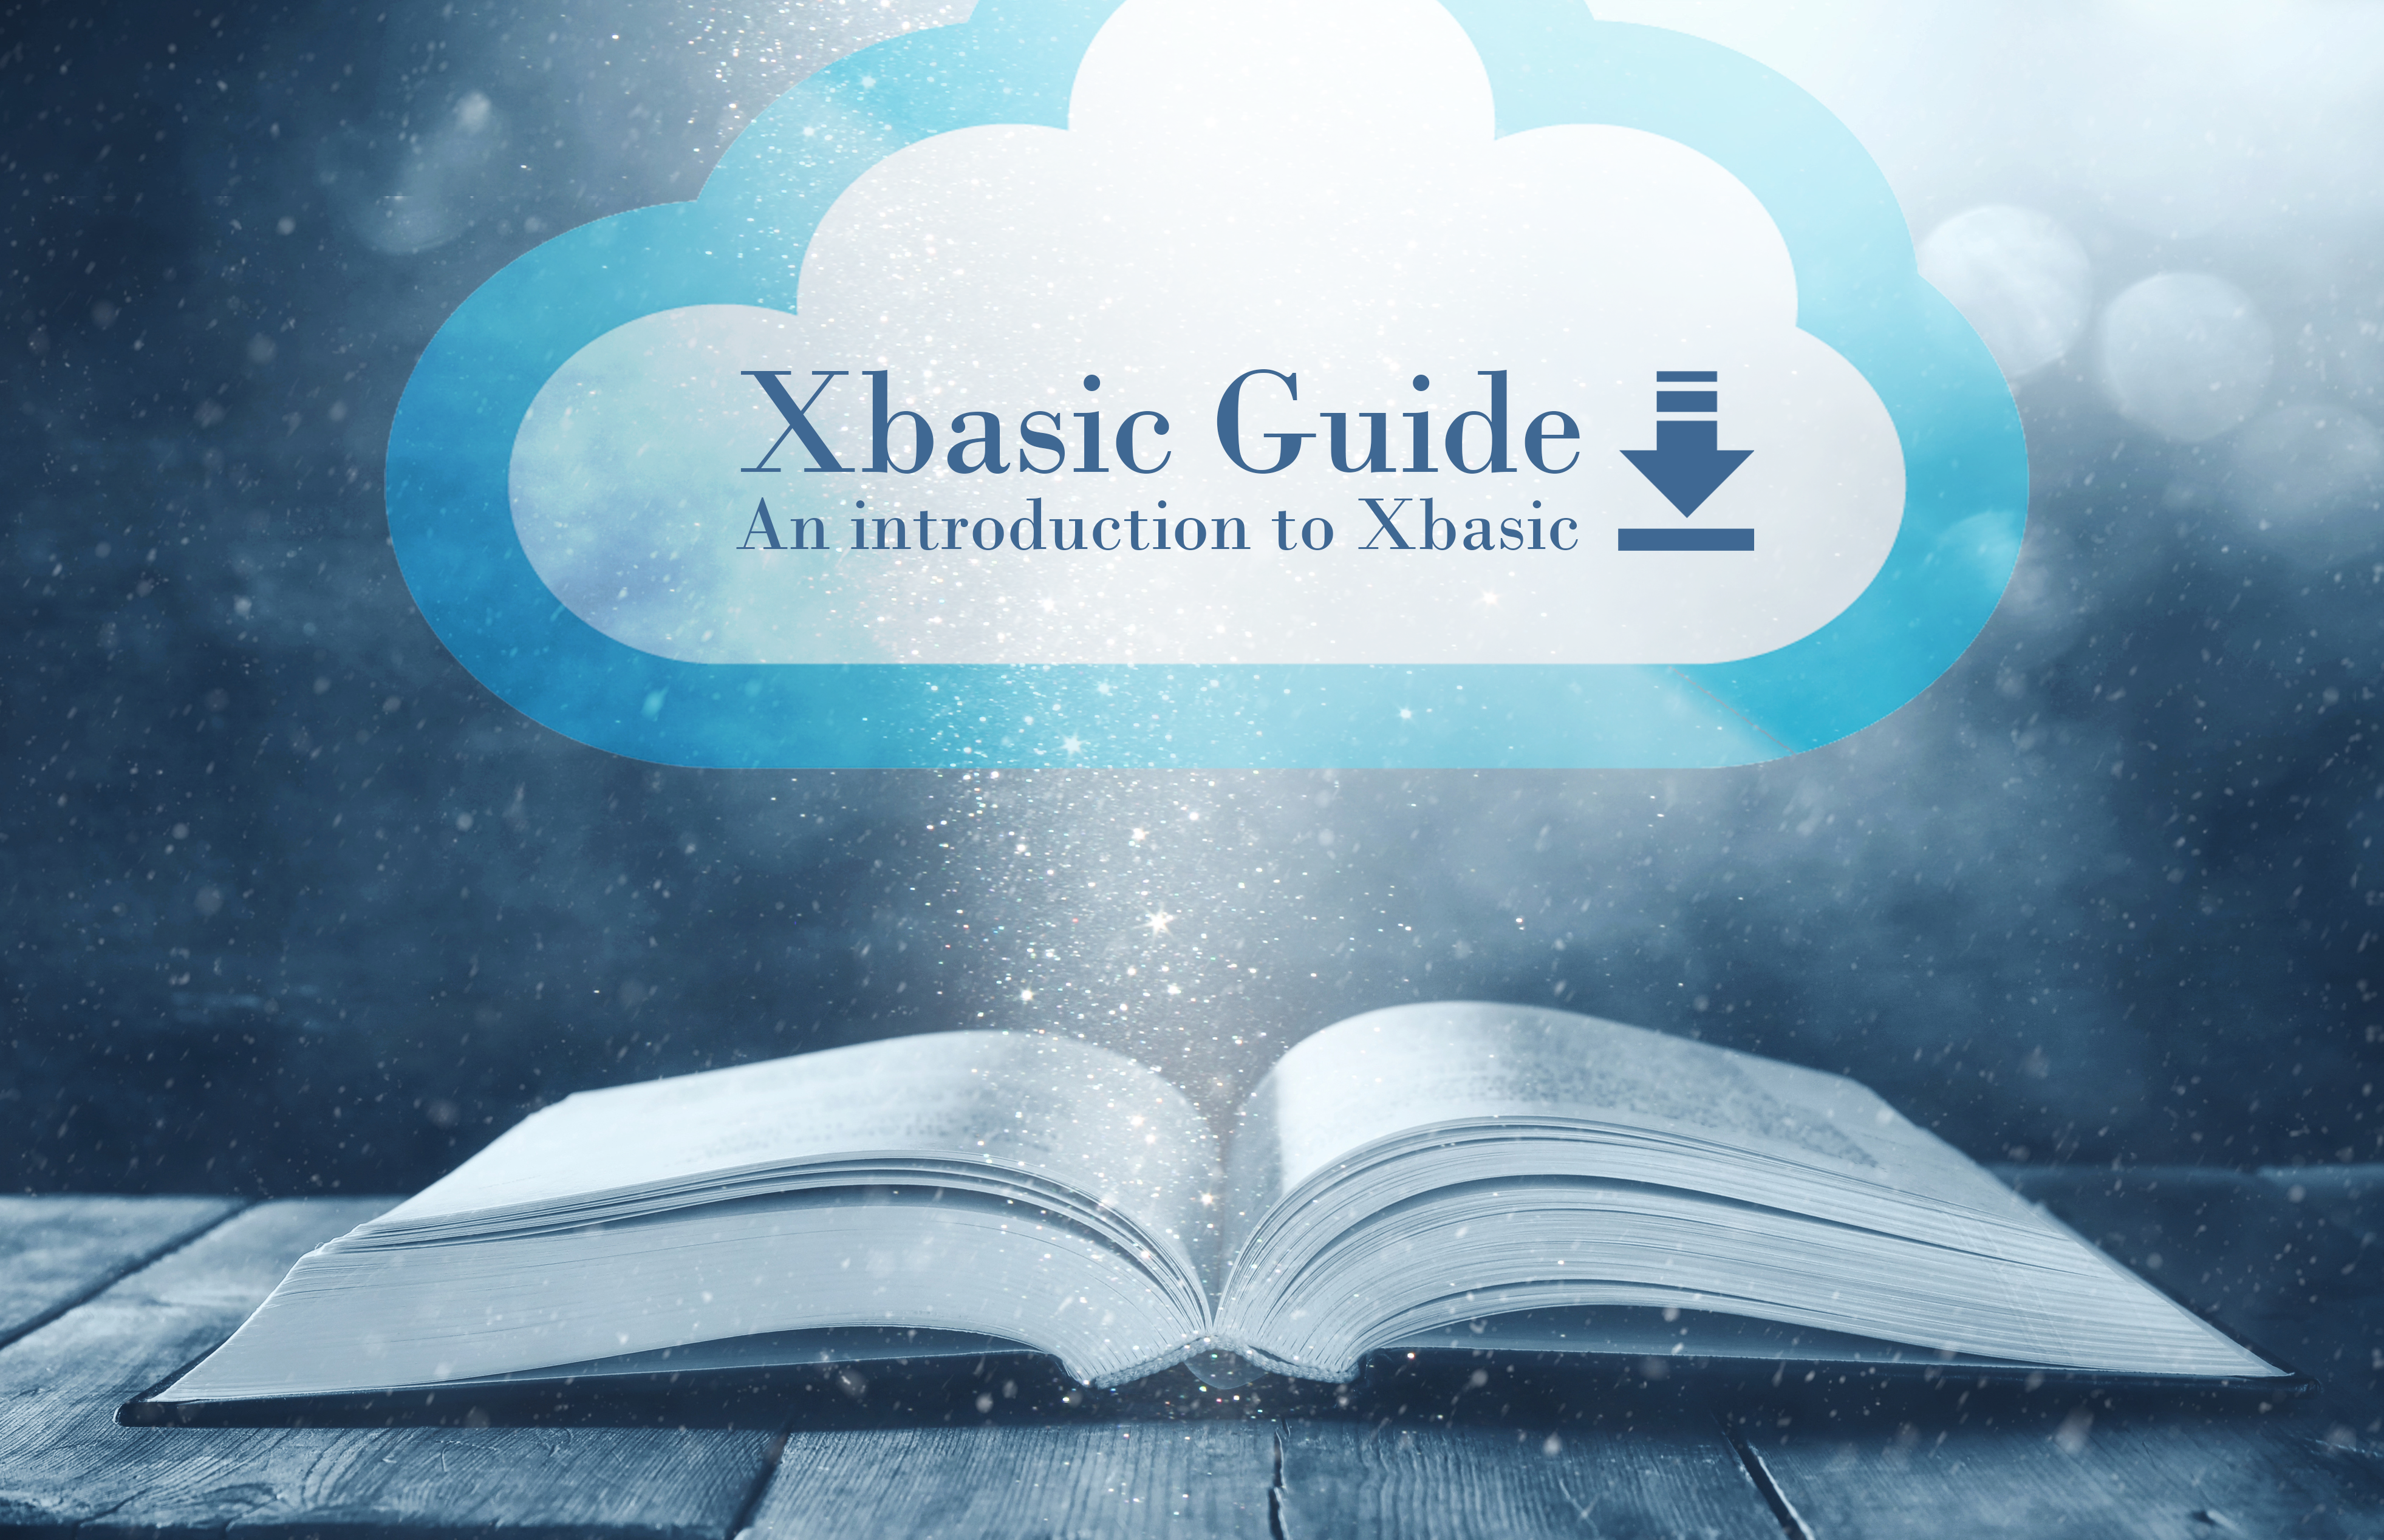 Xbasic Guide - An introduction to Xbasic